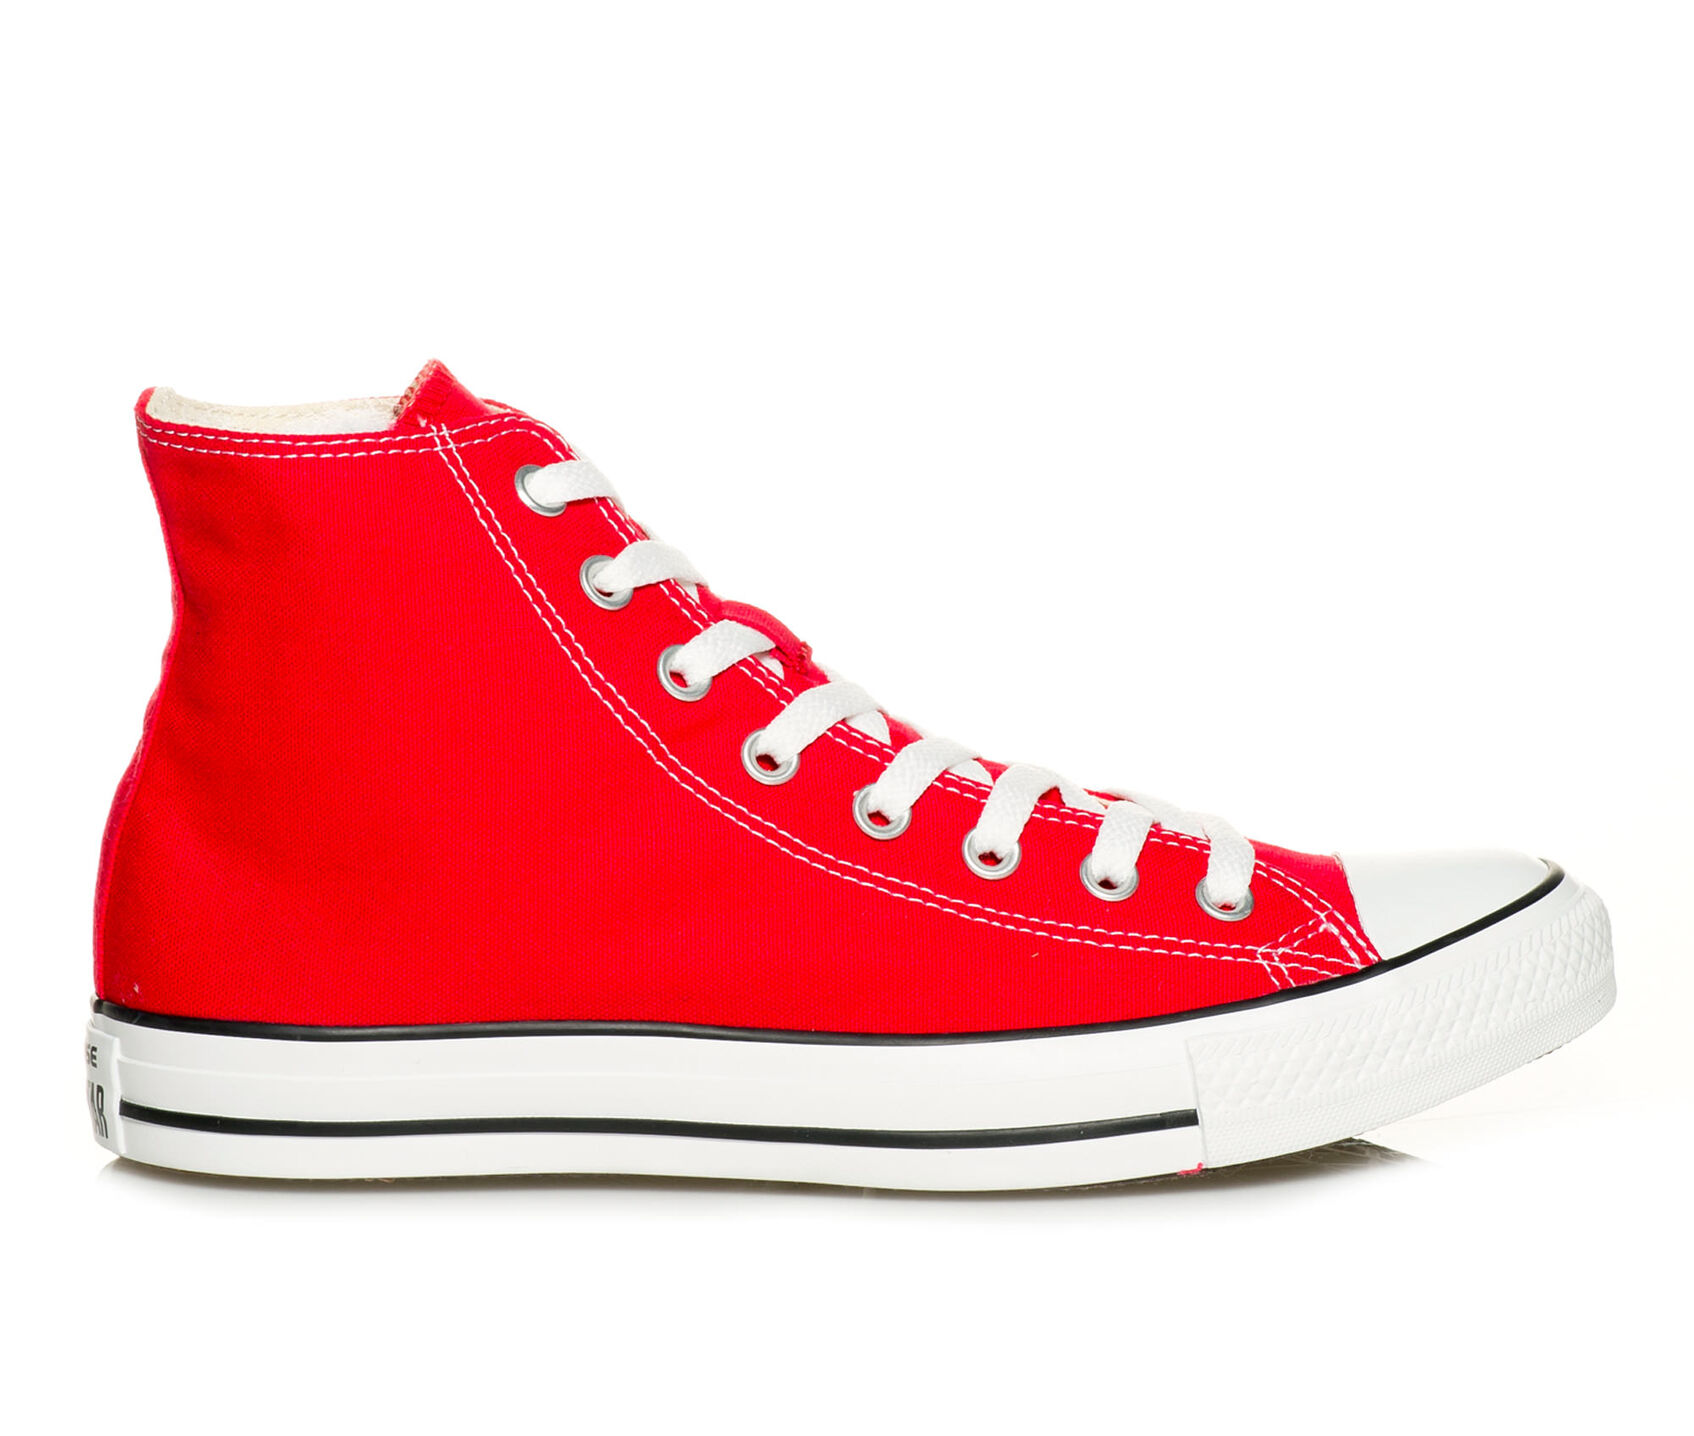 e227efe553a2 ... Converse Chuck Taylor All Star Canvas Hi High Top Sneakers. Previous